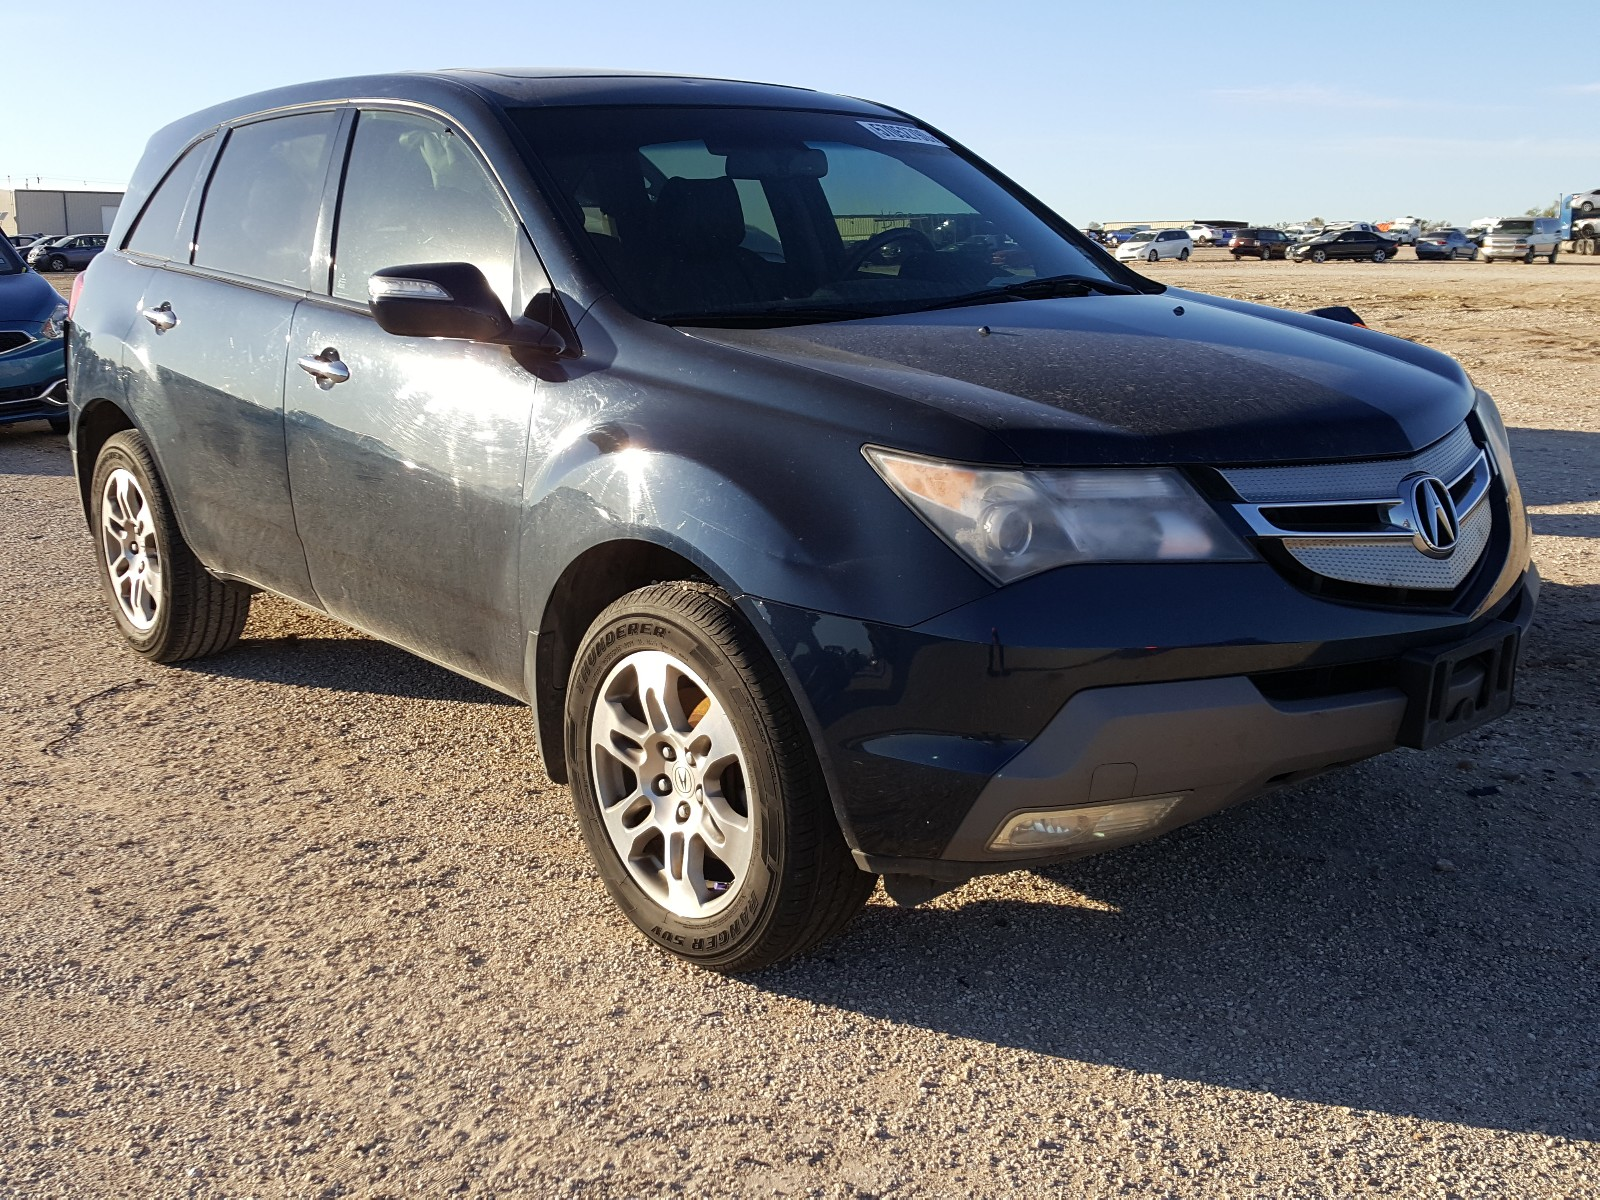 2009 Acura Mdx For Sale At Copart San Antonio Tx Lot 57052790 Salvagereseller Com